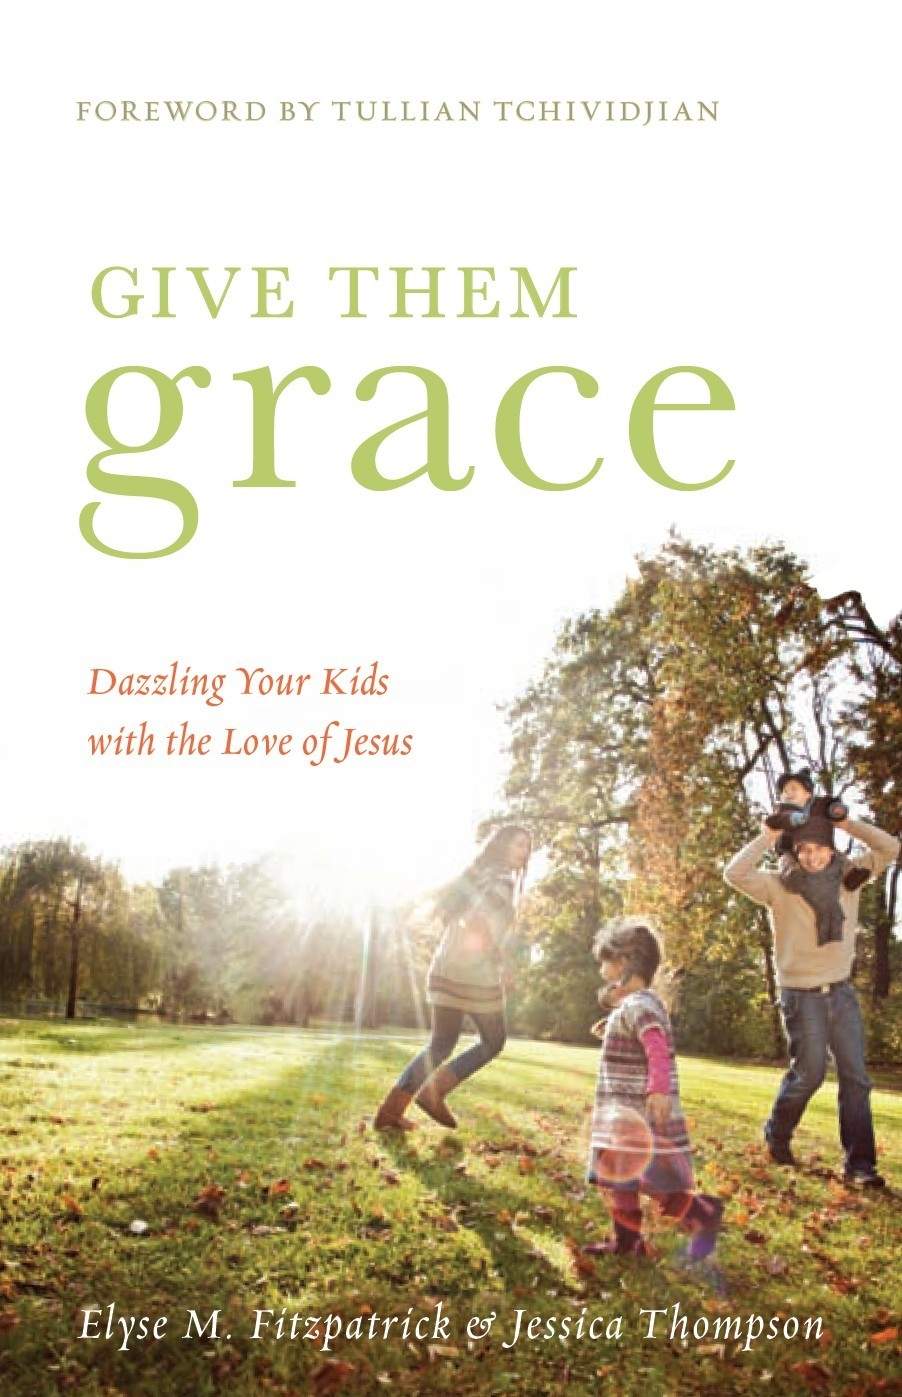 Give Them Grace (Foreword by Tullian Tchividjian) By: Elyse M. Fitzpatrick,Jessica Thompson